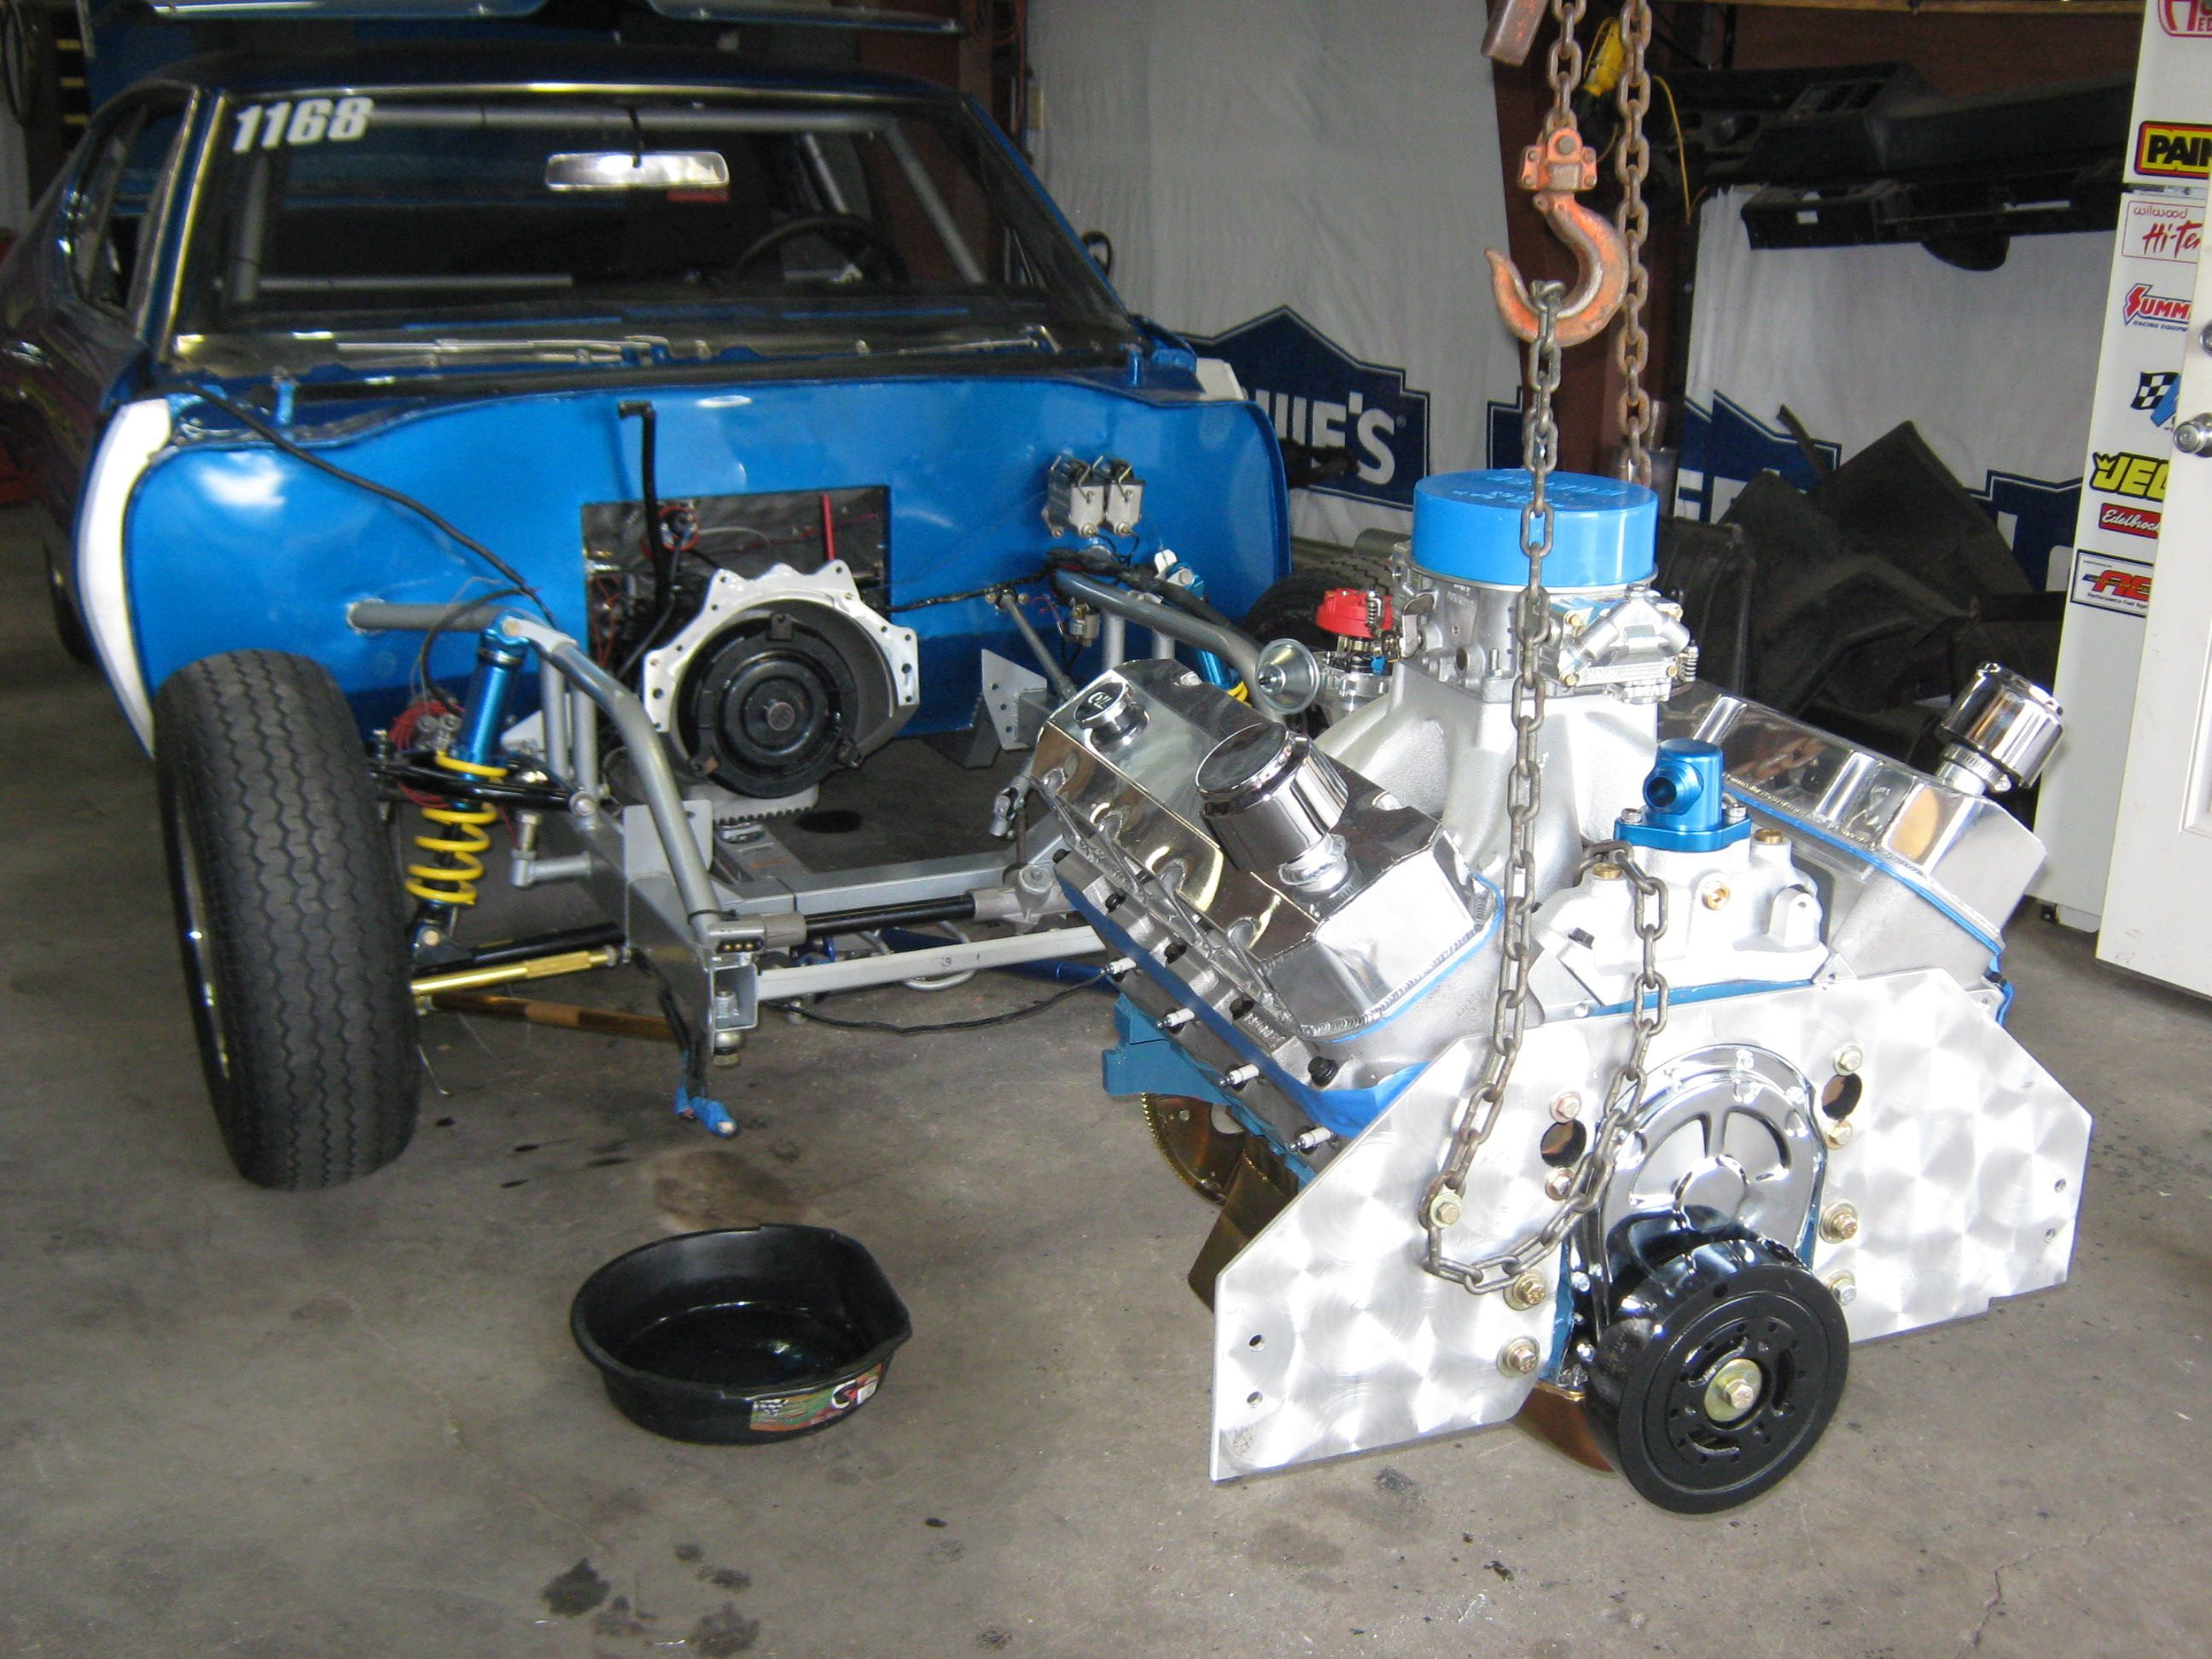 632ci proseries stroker crate engine big block gm style blueprint engines customer photos from bill taylor bill has installed our into his 1968 pontiac gto the has aluminum heads roller cam and boasts a malvernweather Choice Image